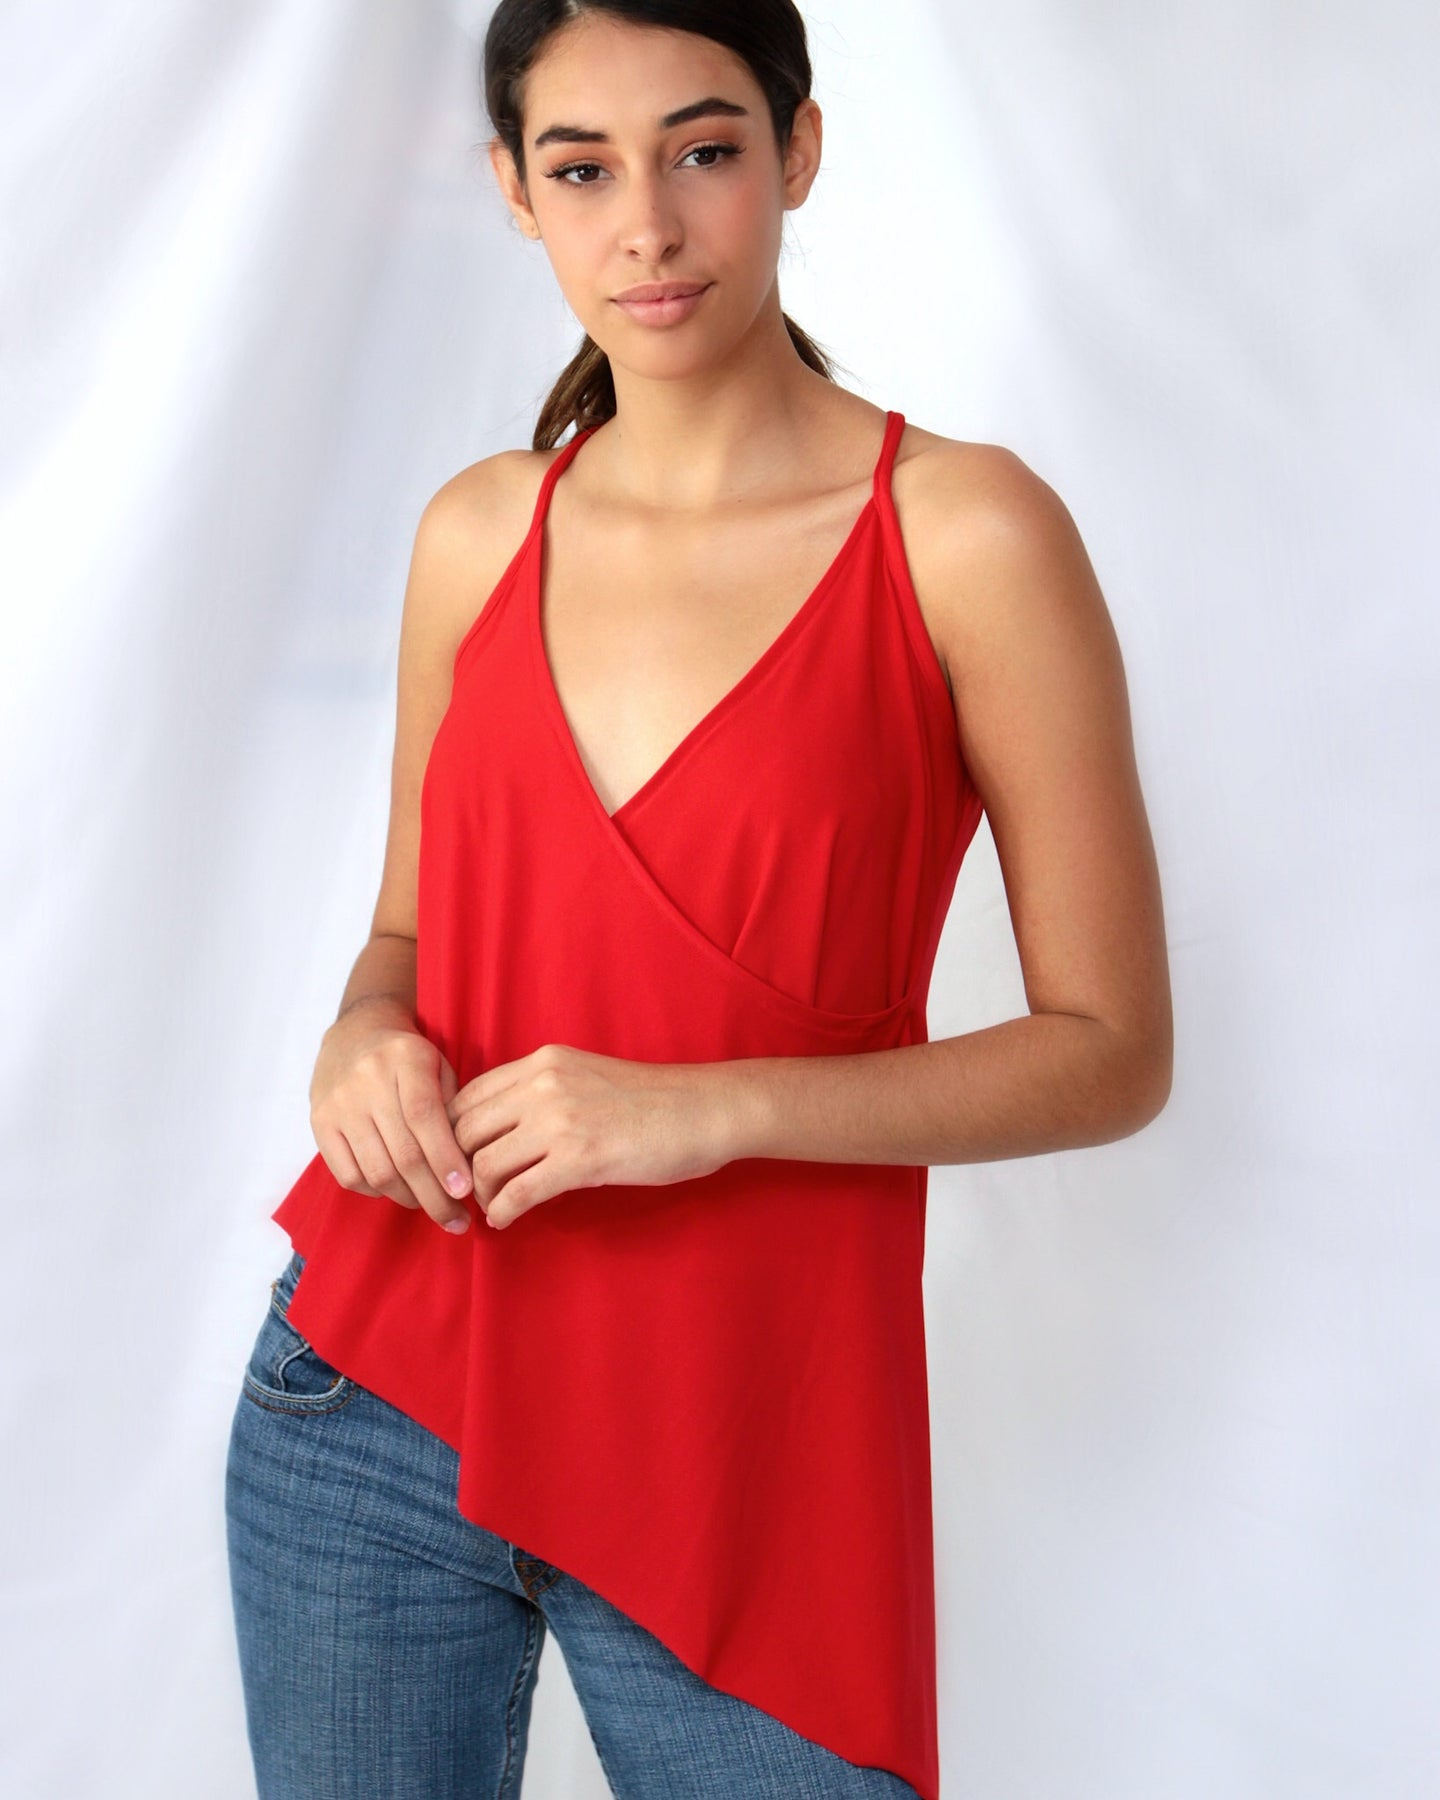 red top for women